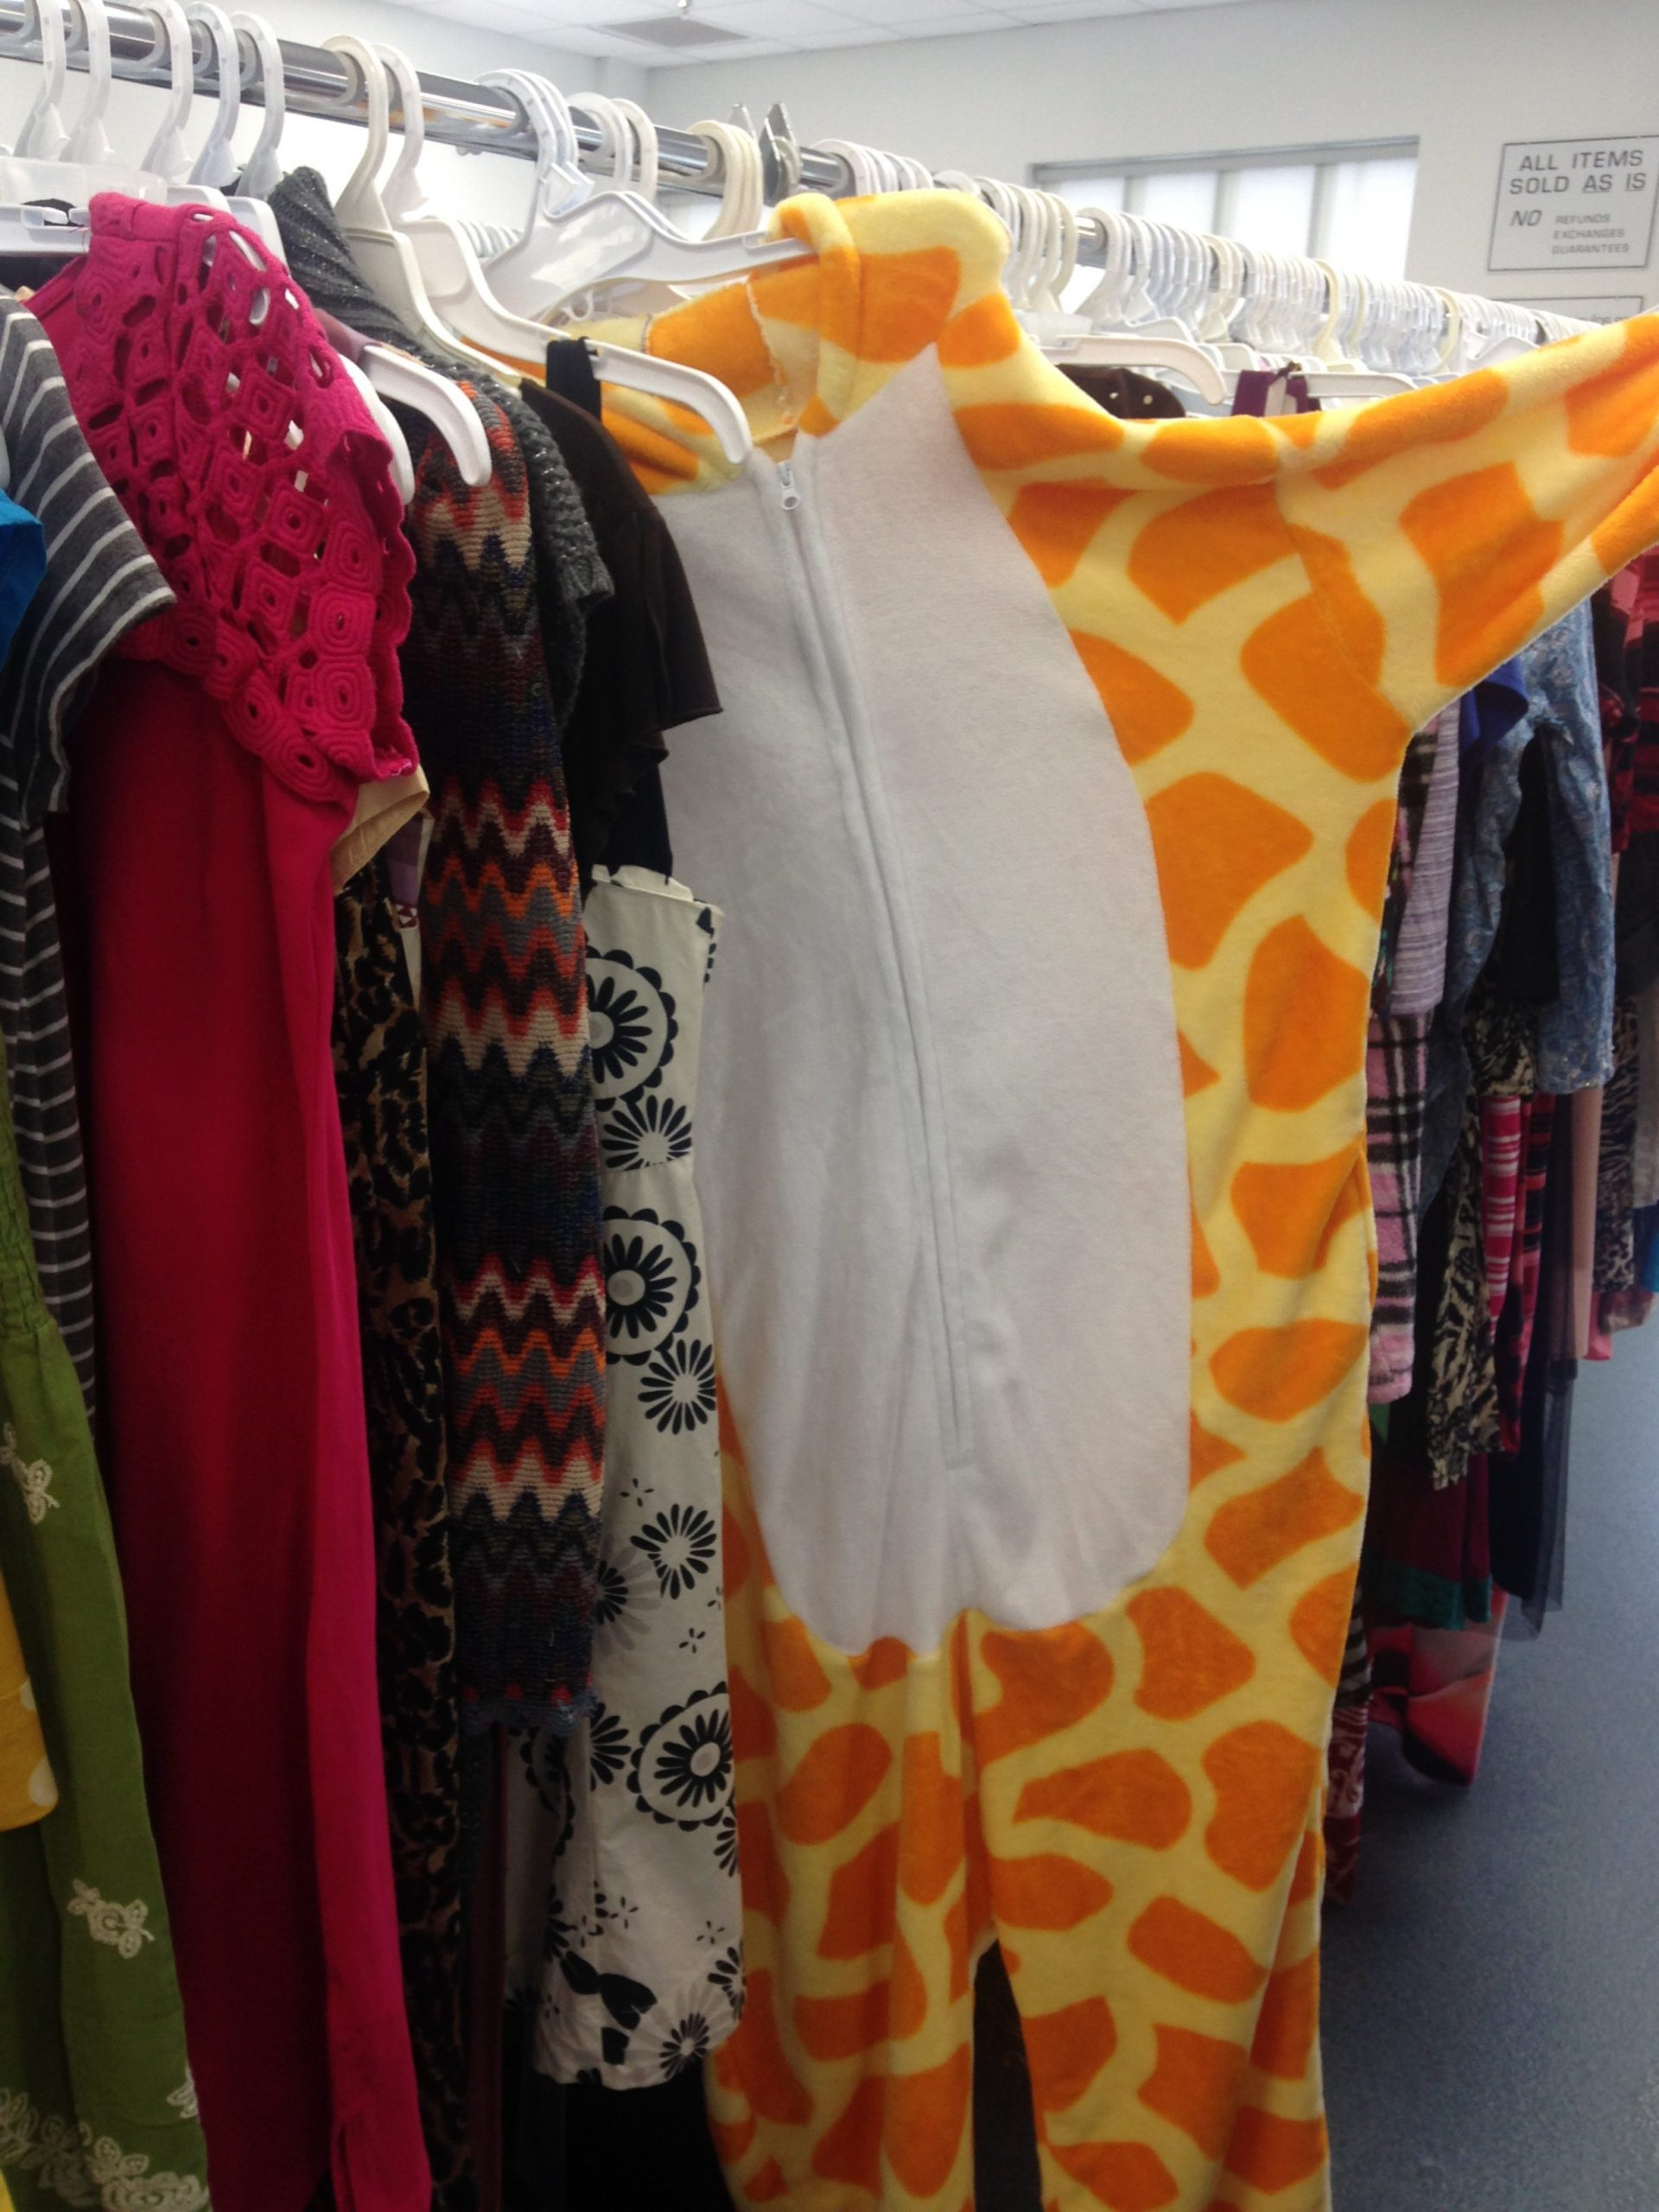 Giraffe onesie hanging up on a rack of dresses